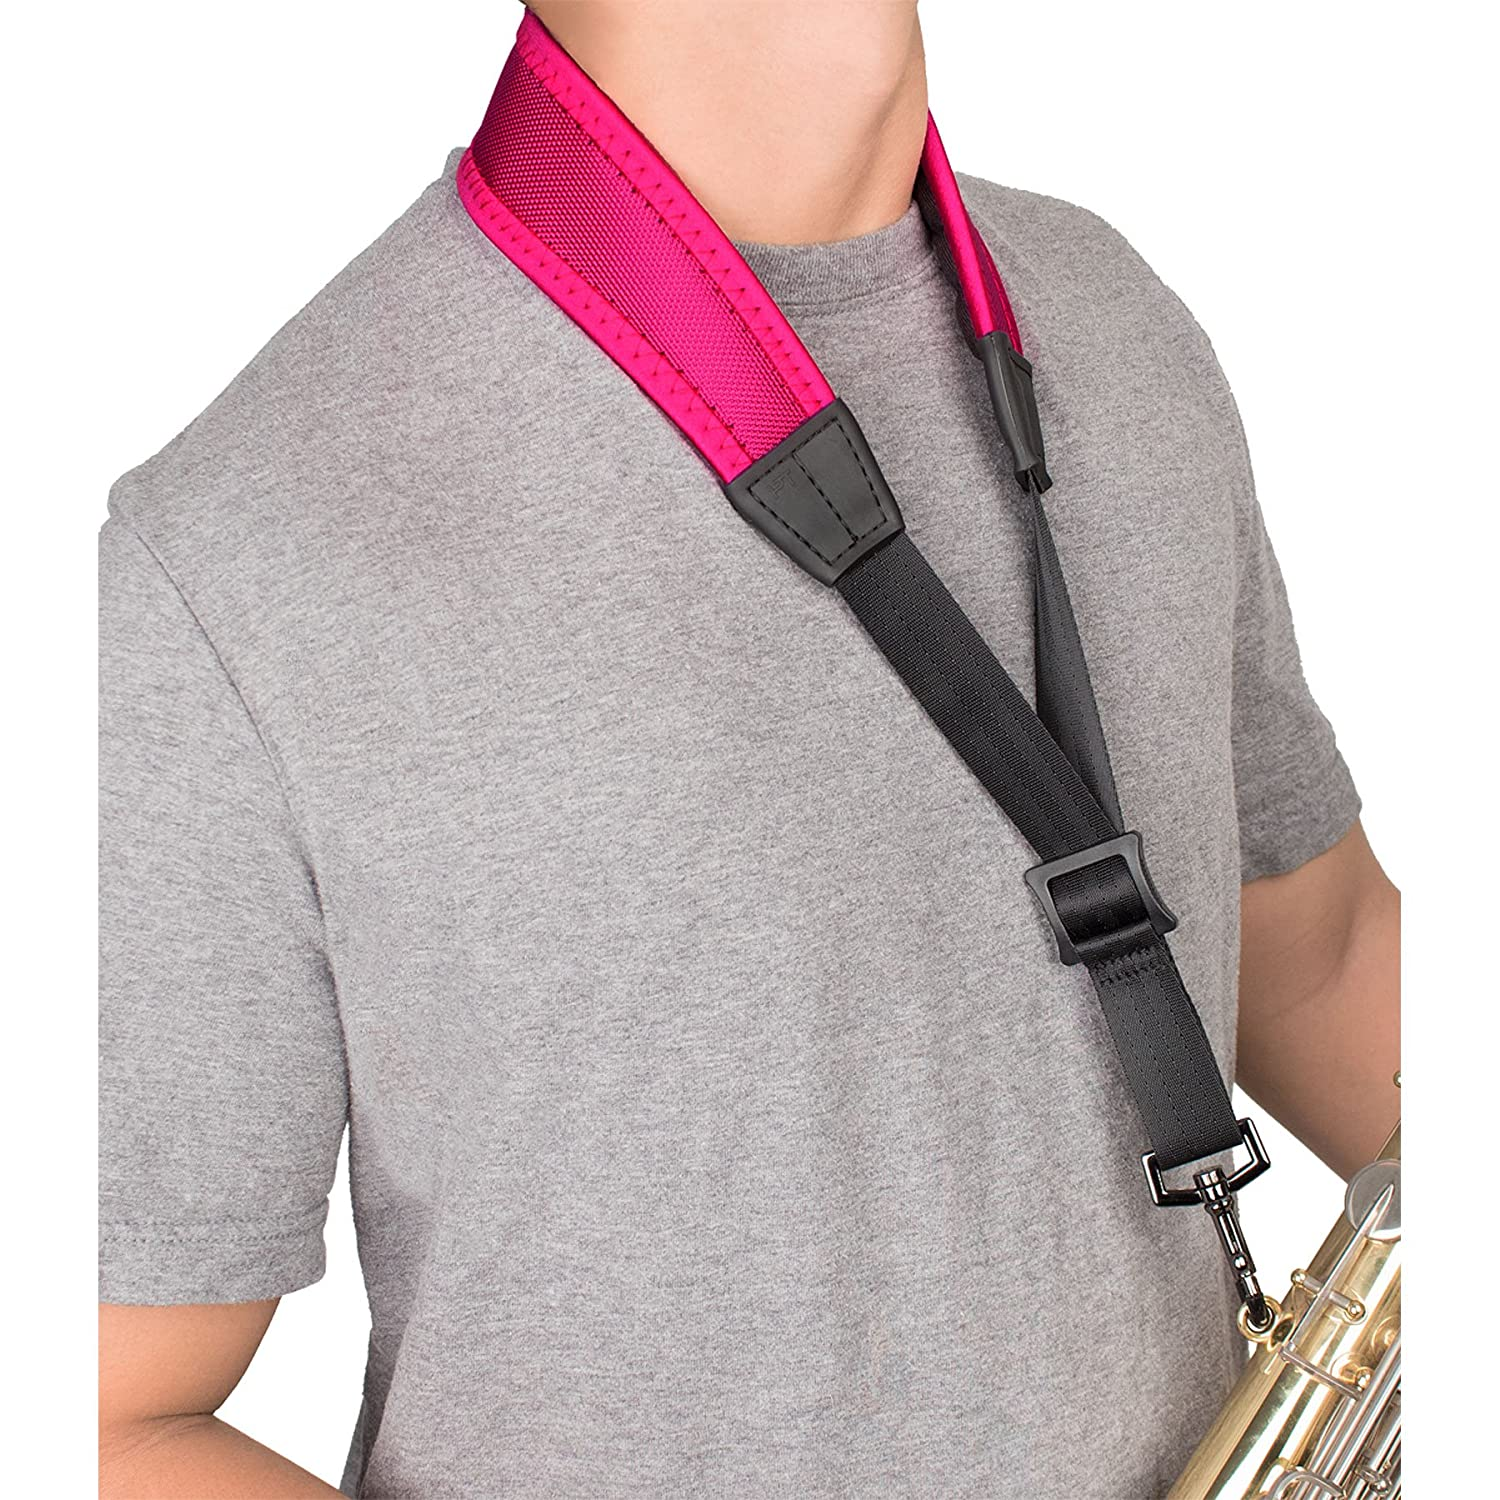 Protec 24-Inch Ballistic Neoprene Less-Stress Saxophone Neck Strap with Coated Metal Hook-Black NLS305M